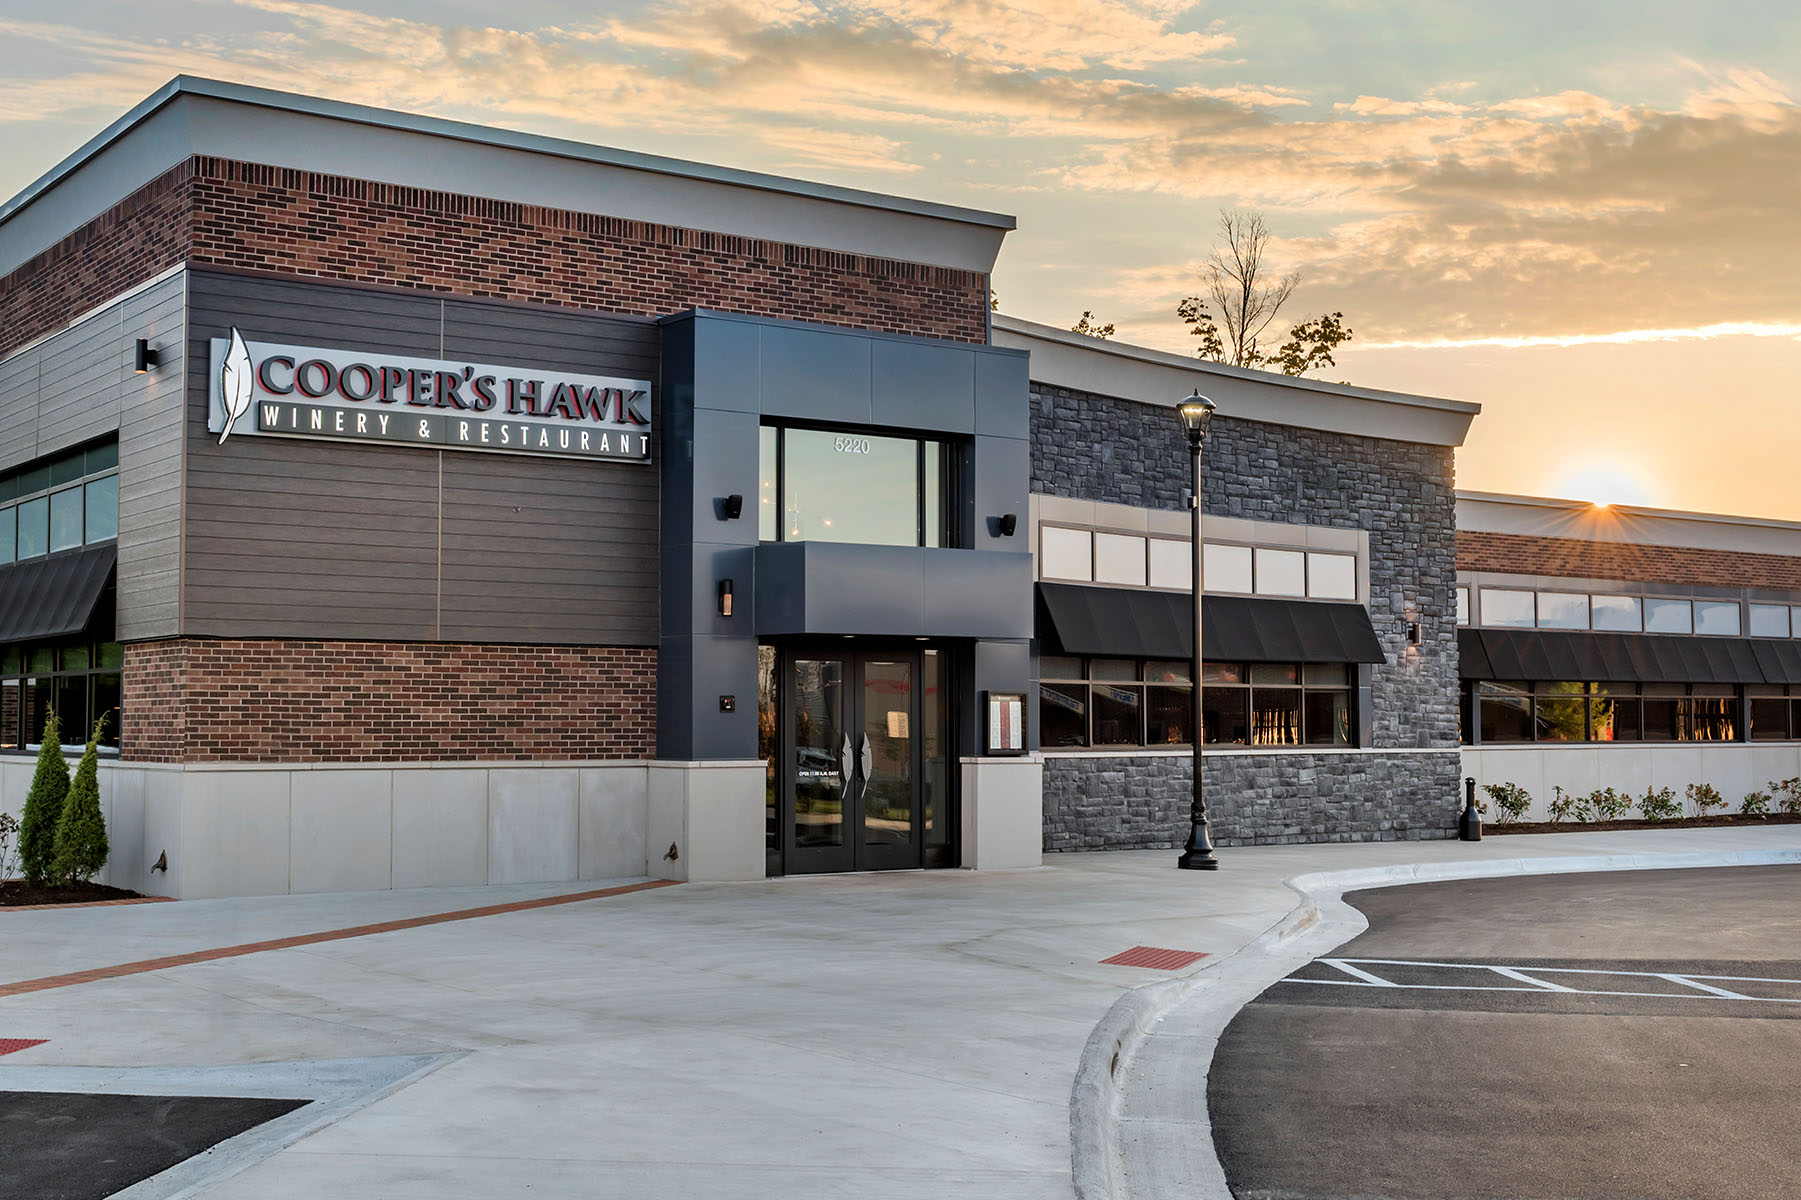 Exterior View of Cooper's Hawk in Centerville at Dusk